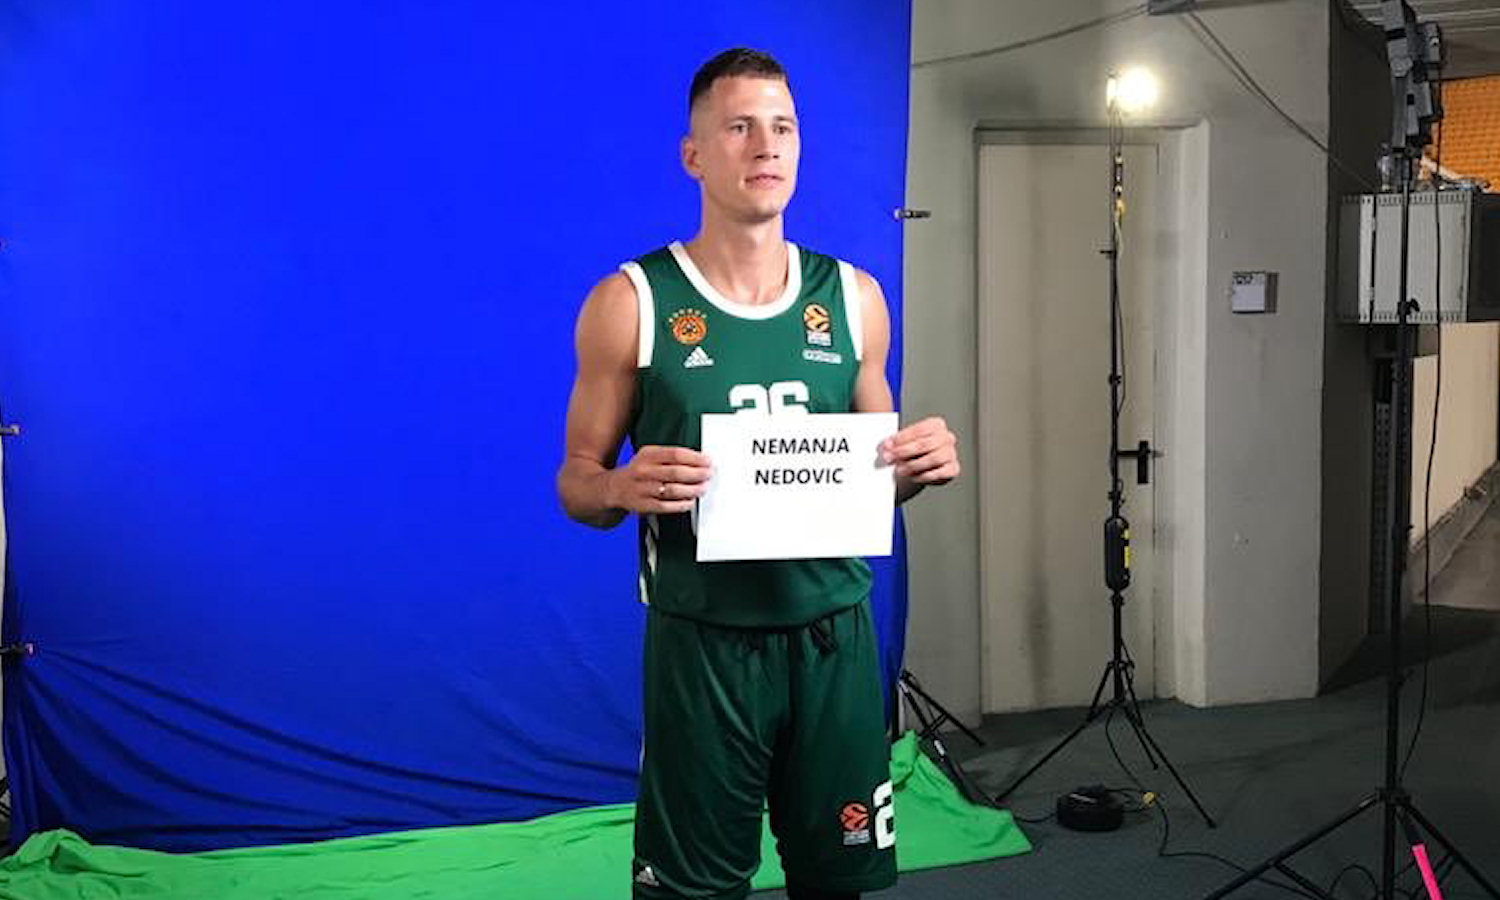 Nemanja Nedovic - Panathinaikos OPAP Athens Media Day 2020 - EB20